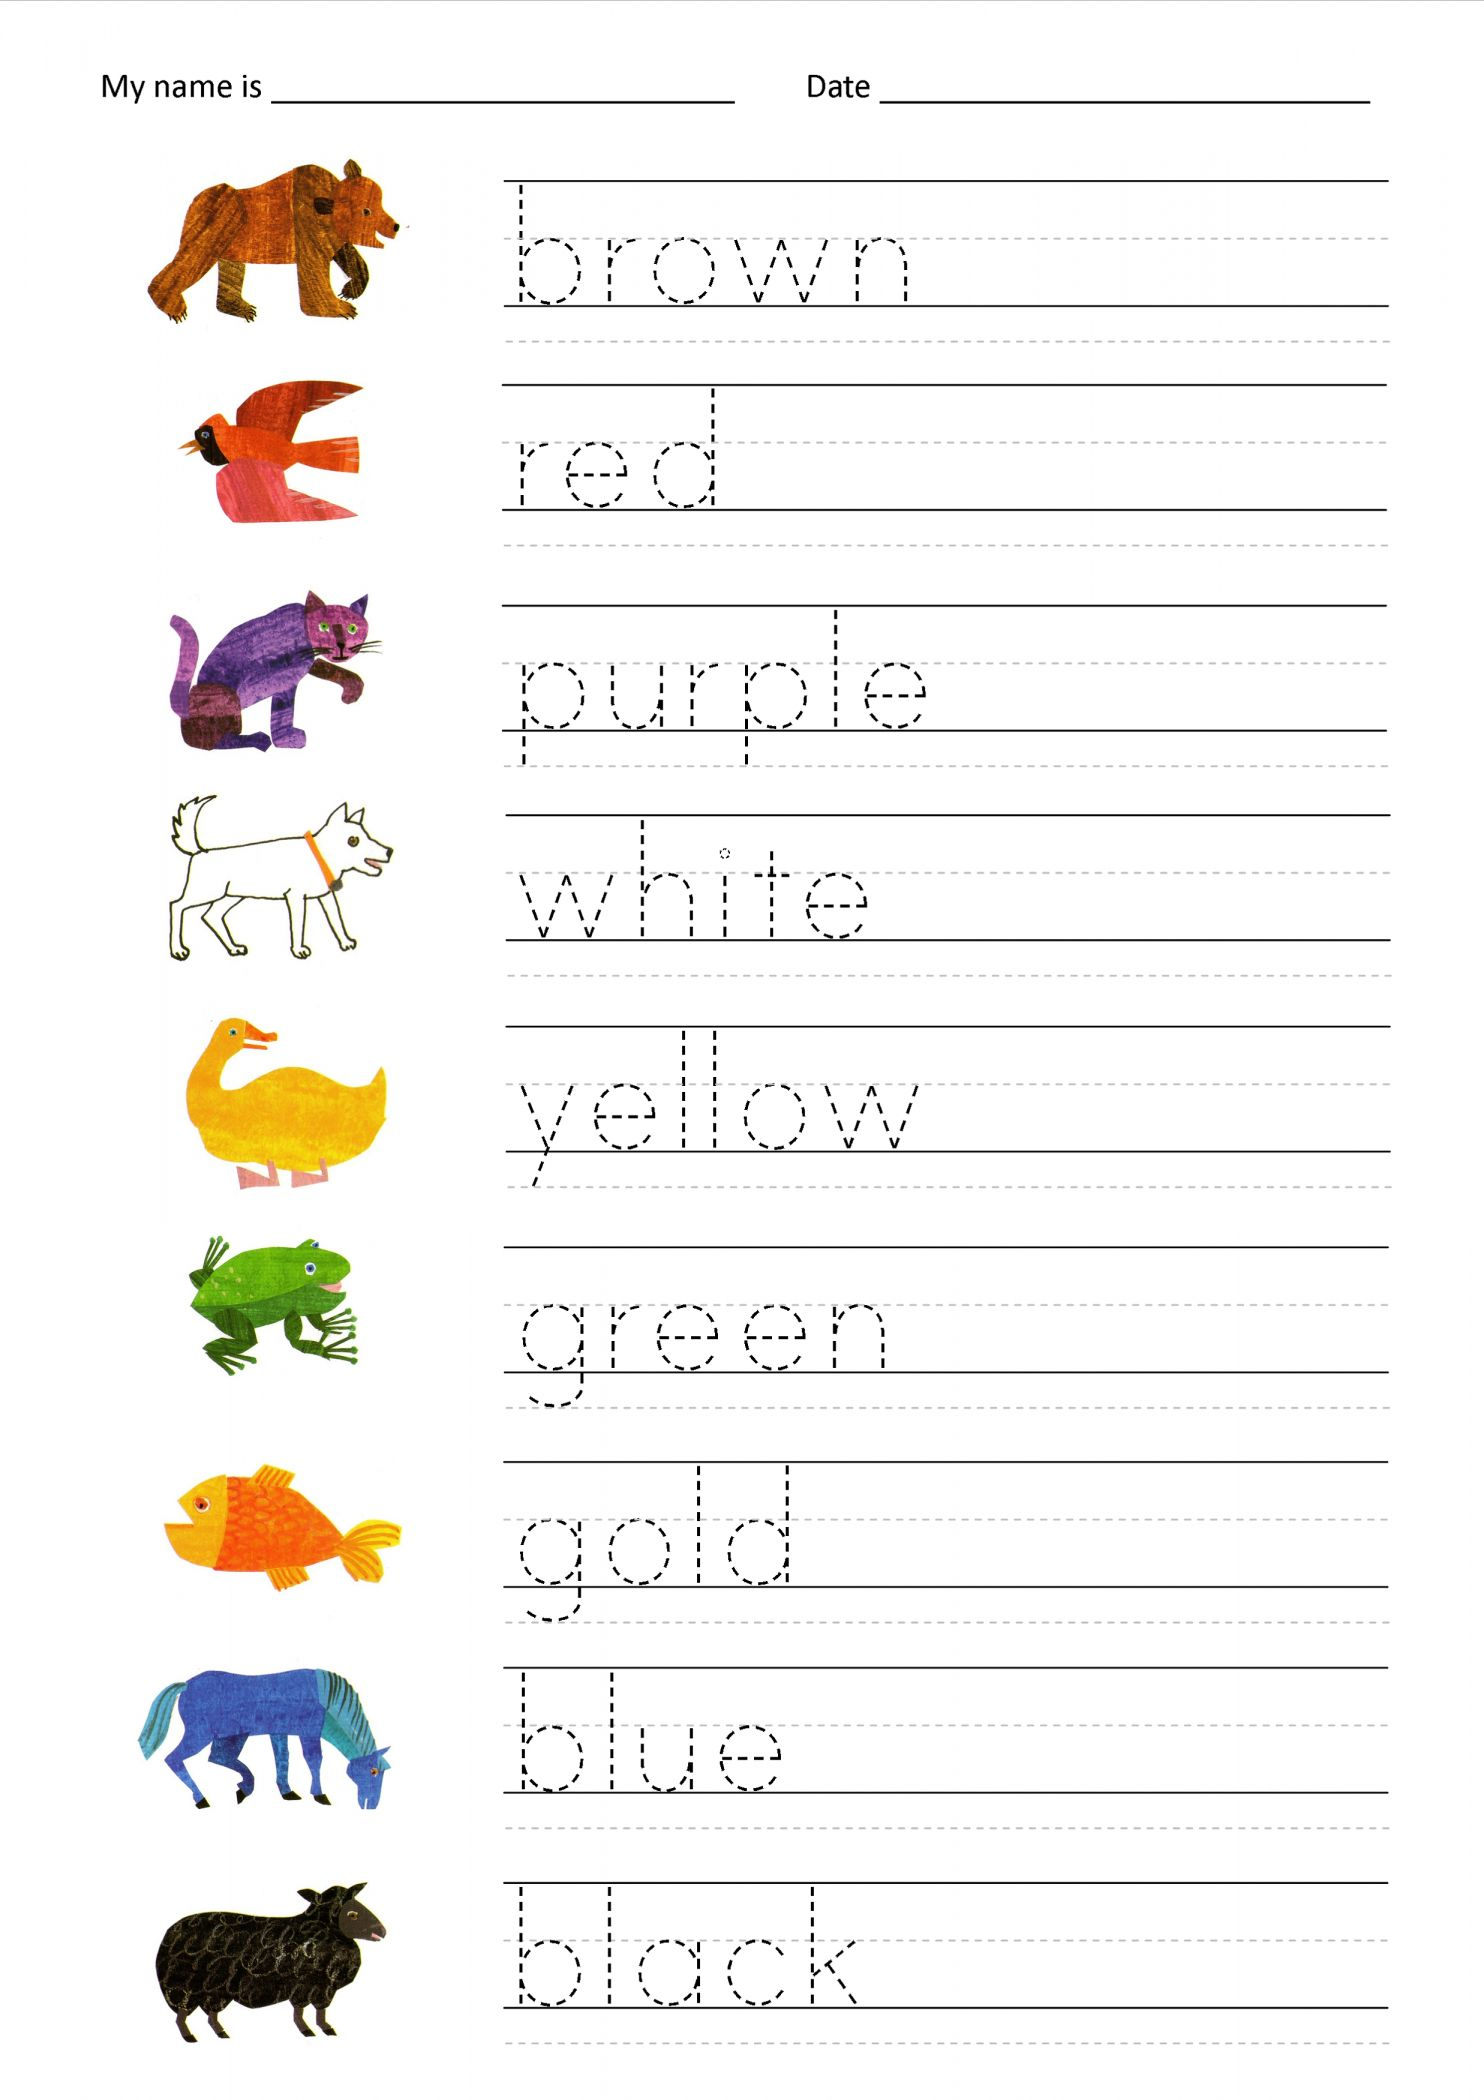 9 Name Worksheet For Preschool